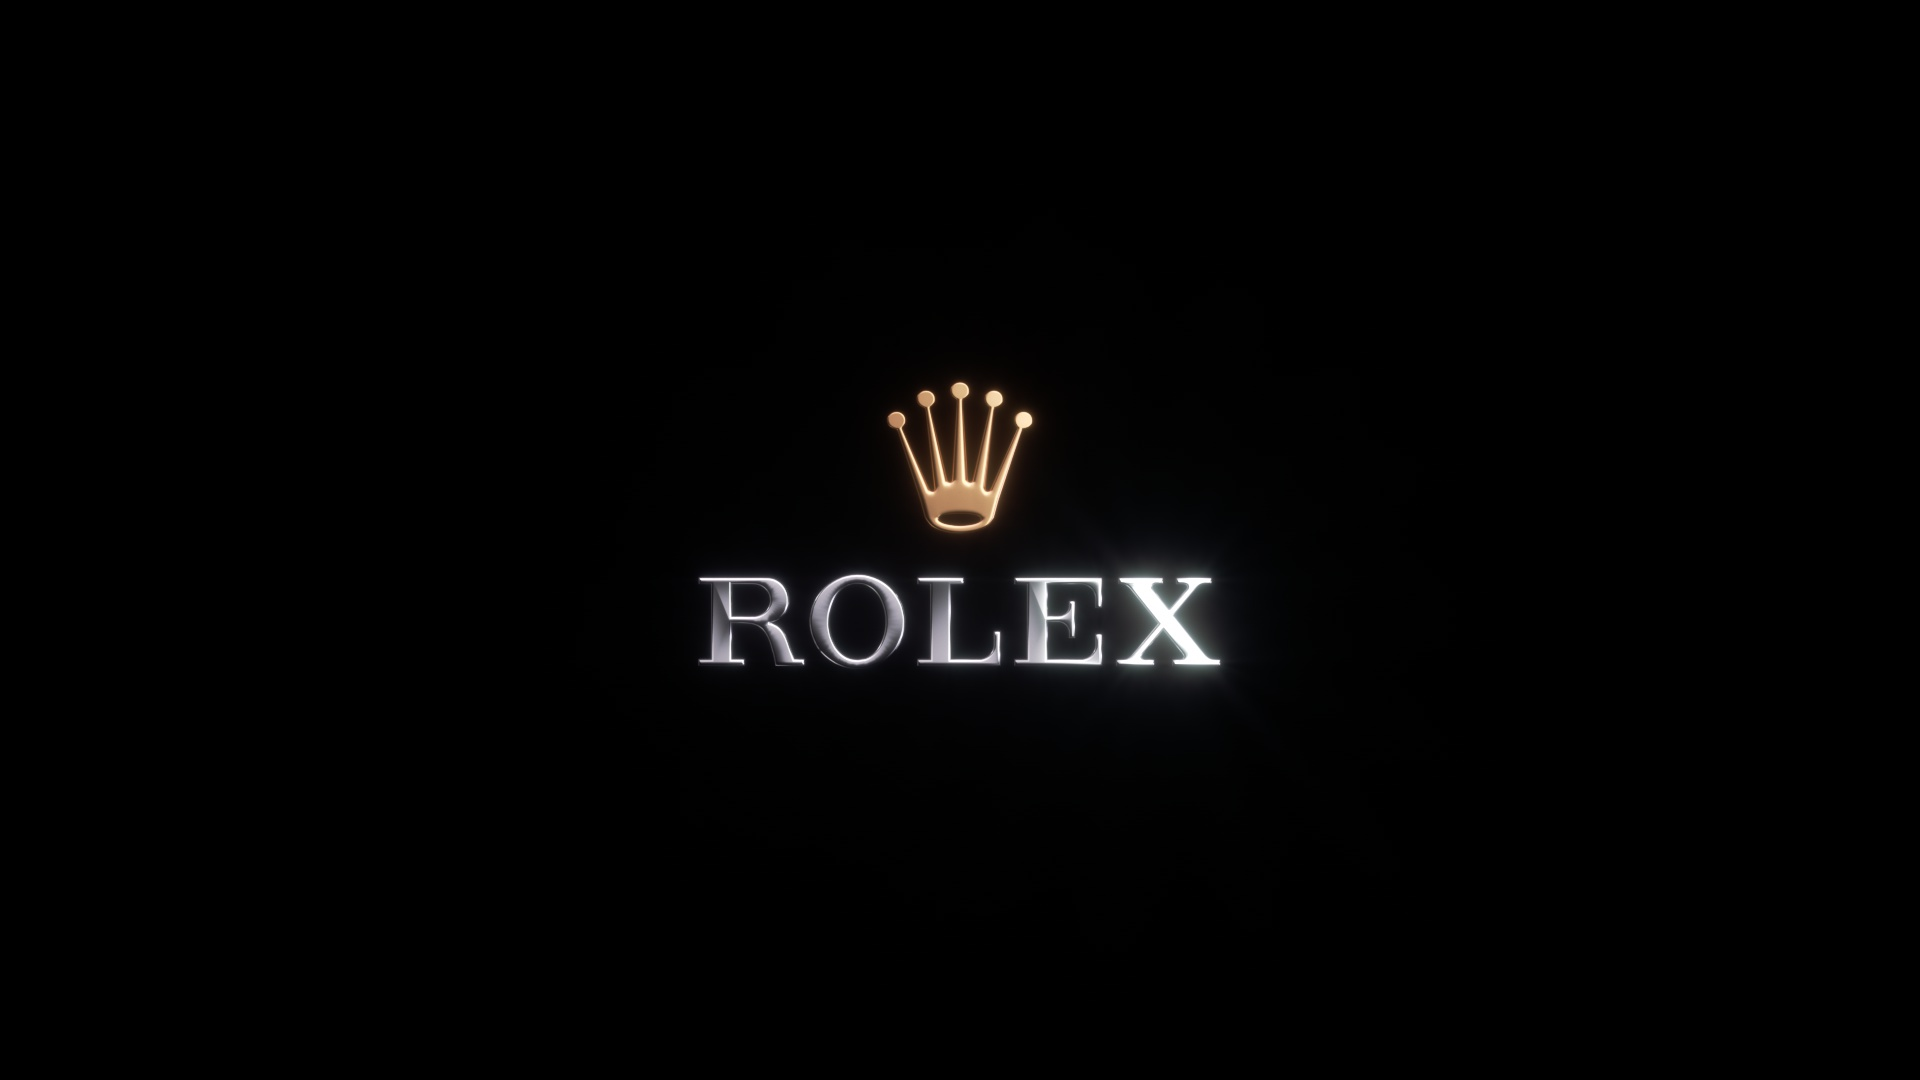 Rolex_CelliniDualTime_Motion_RolexEndFrame-0040.jpg